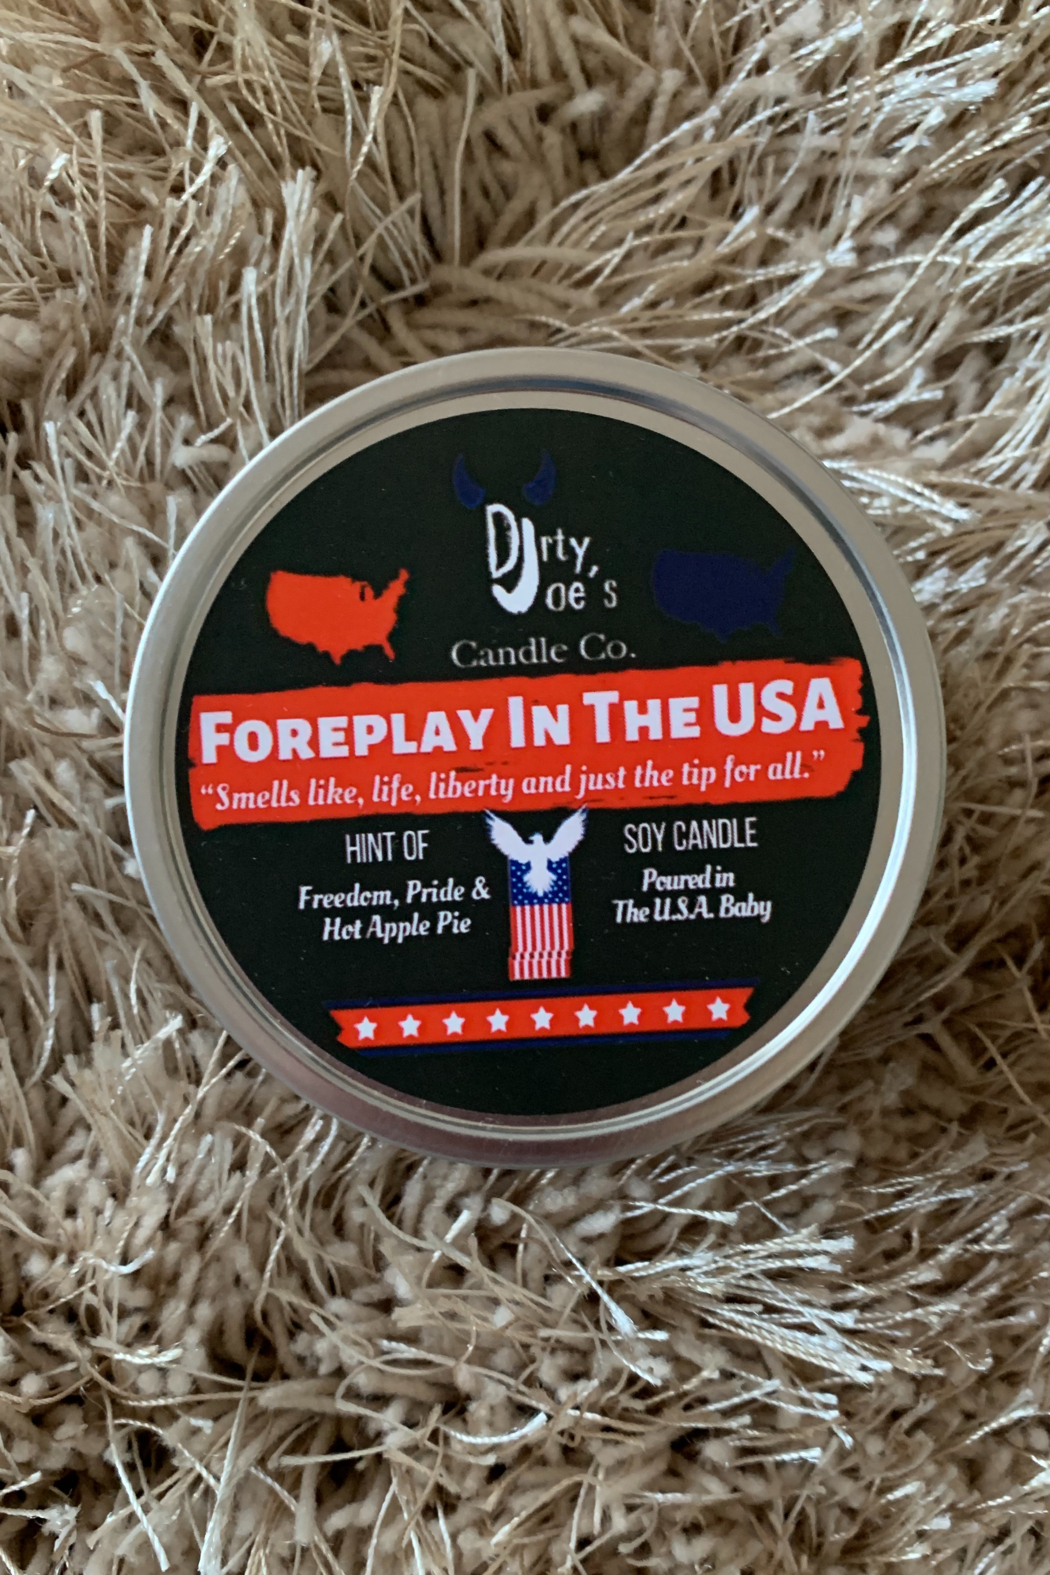 Dirty Joes Candle --Foreplay In The USA - Main Image